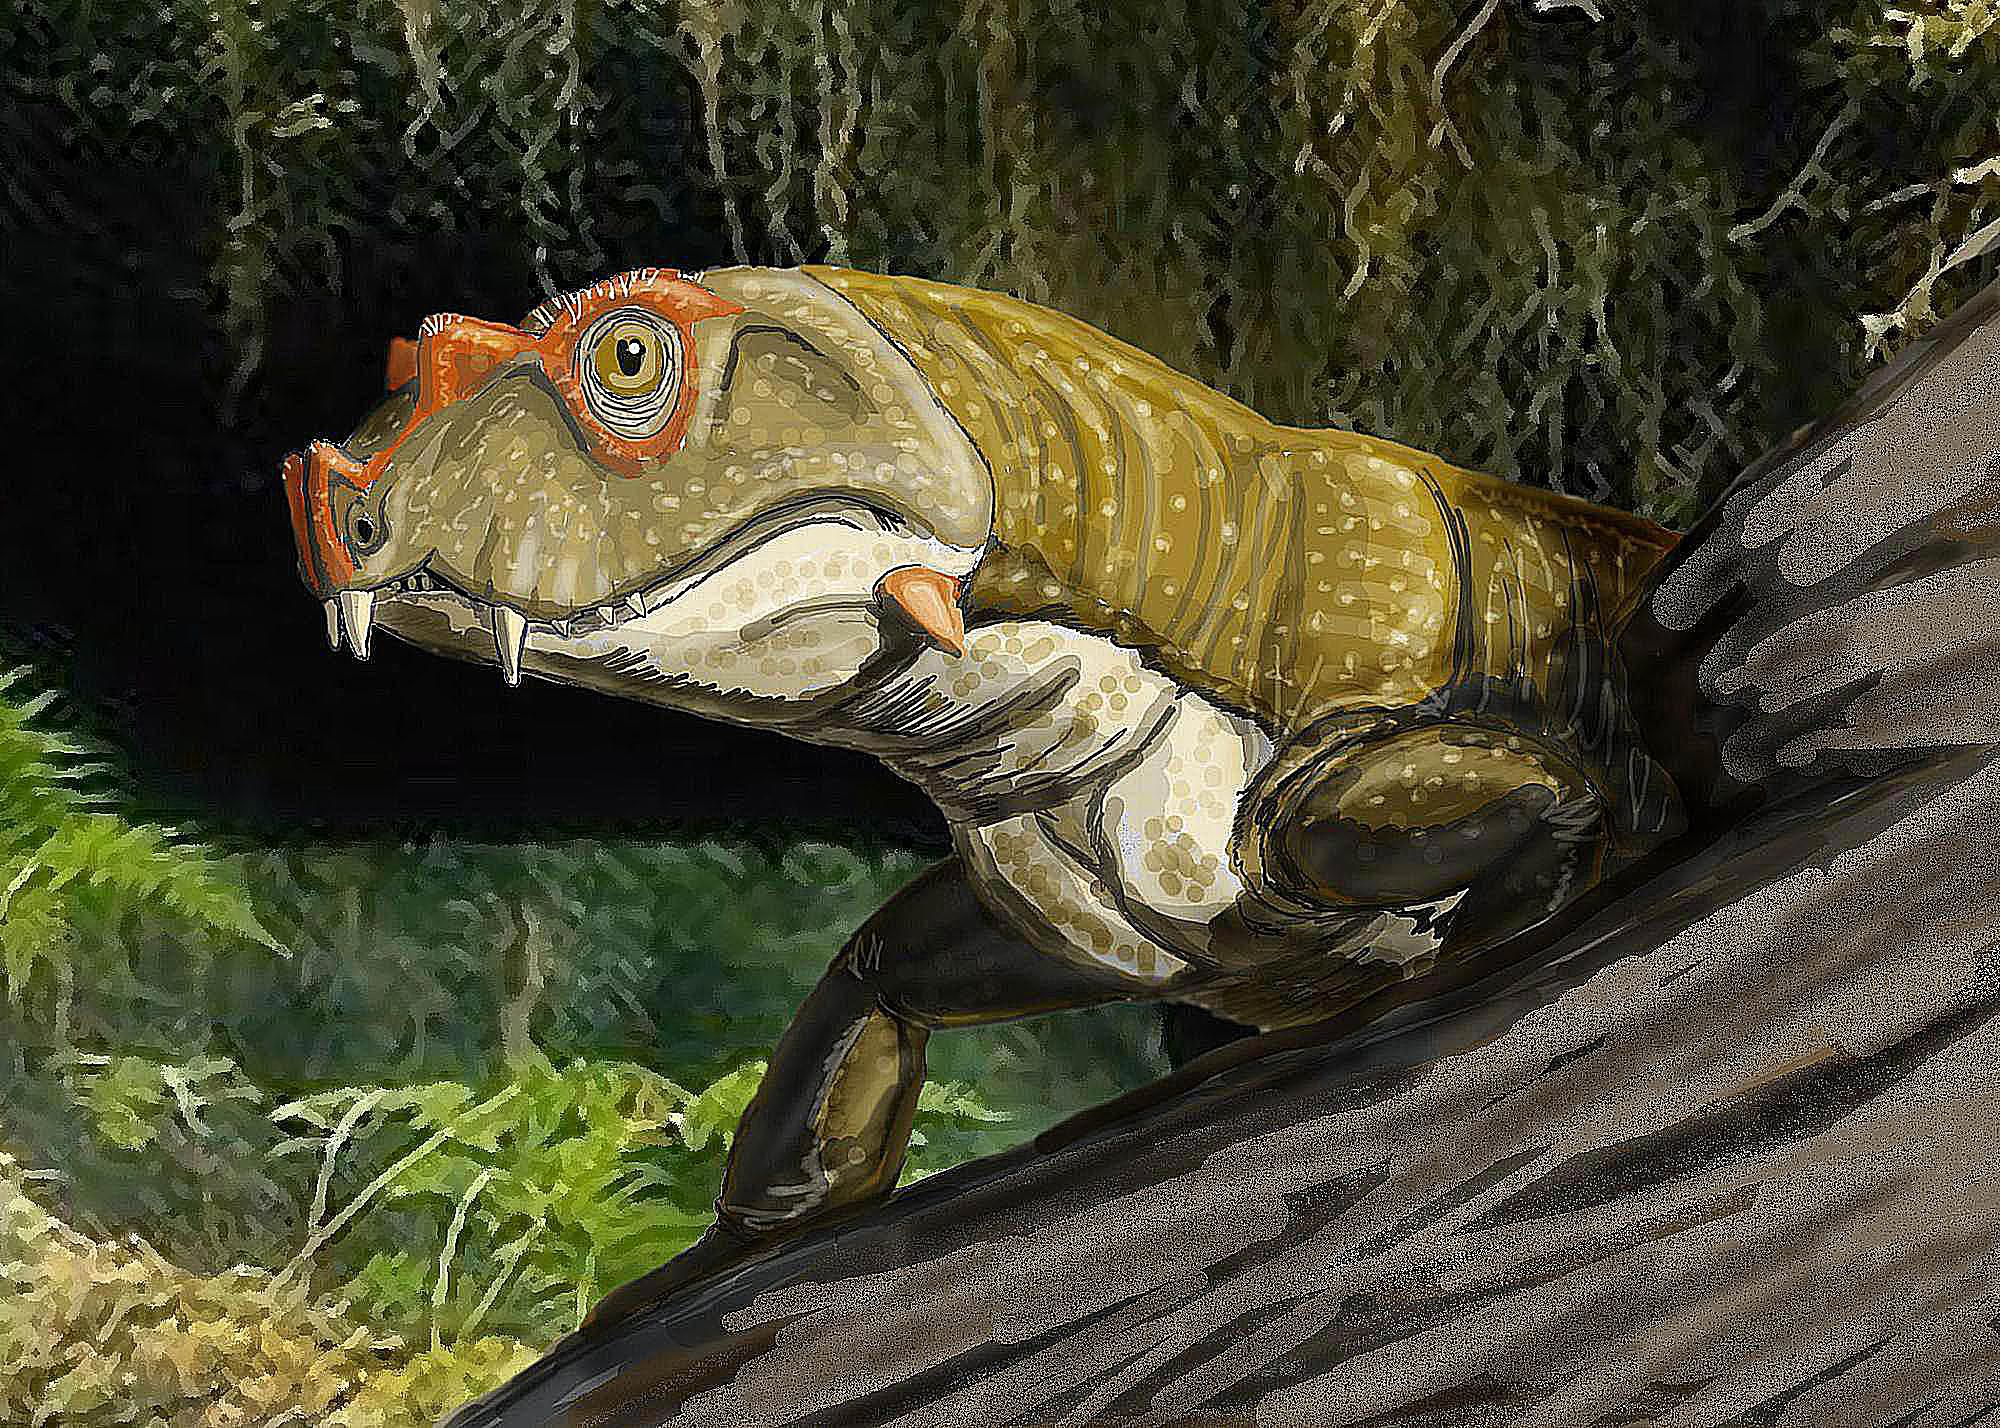 The First Reptiles - The Story of Reptile Evolution